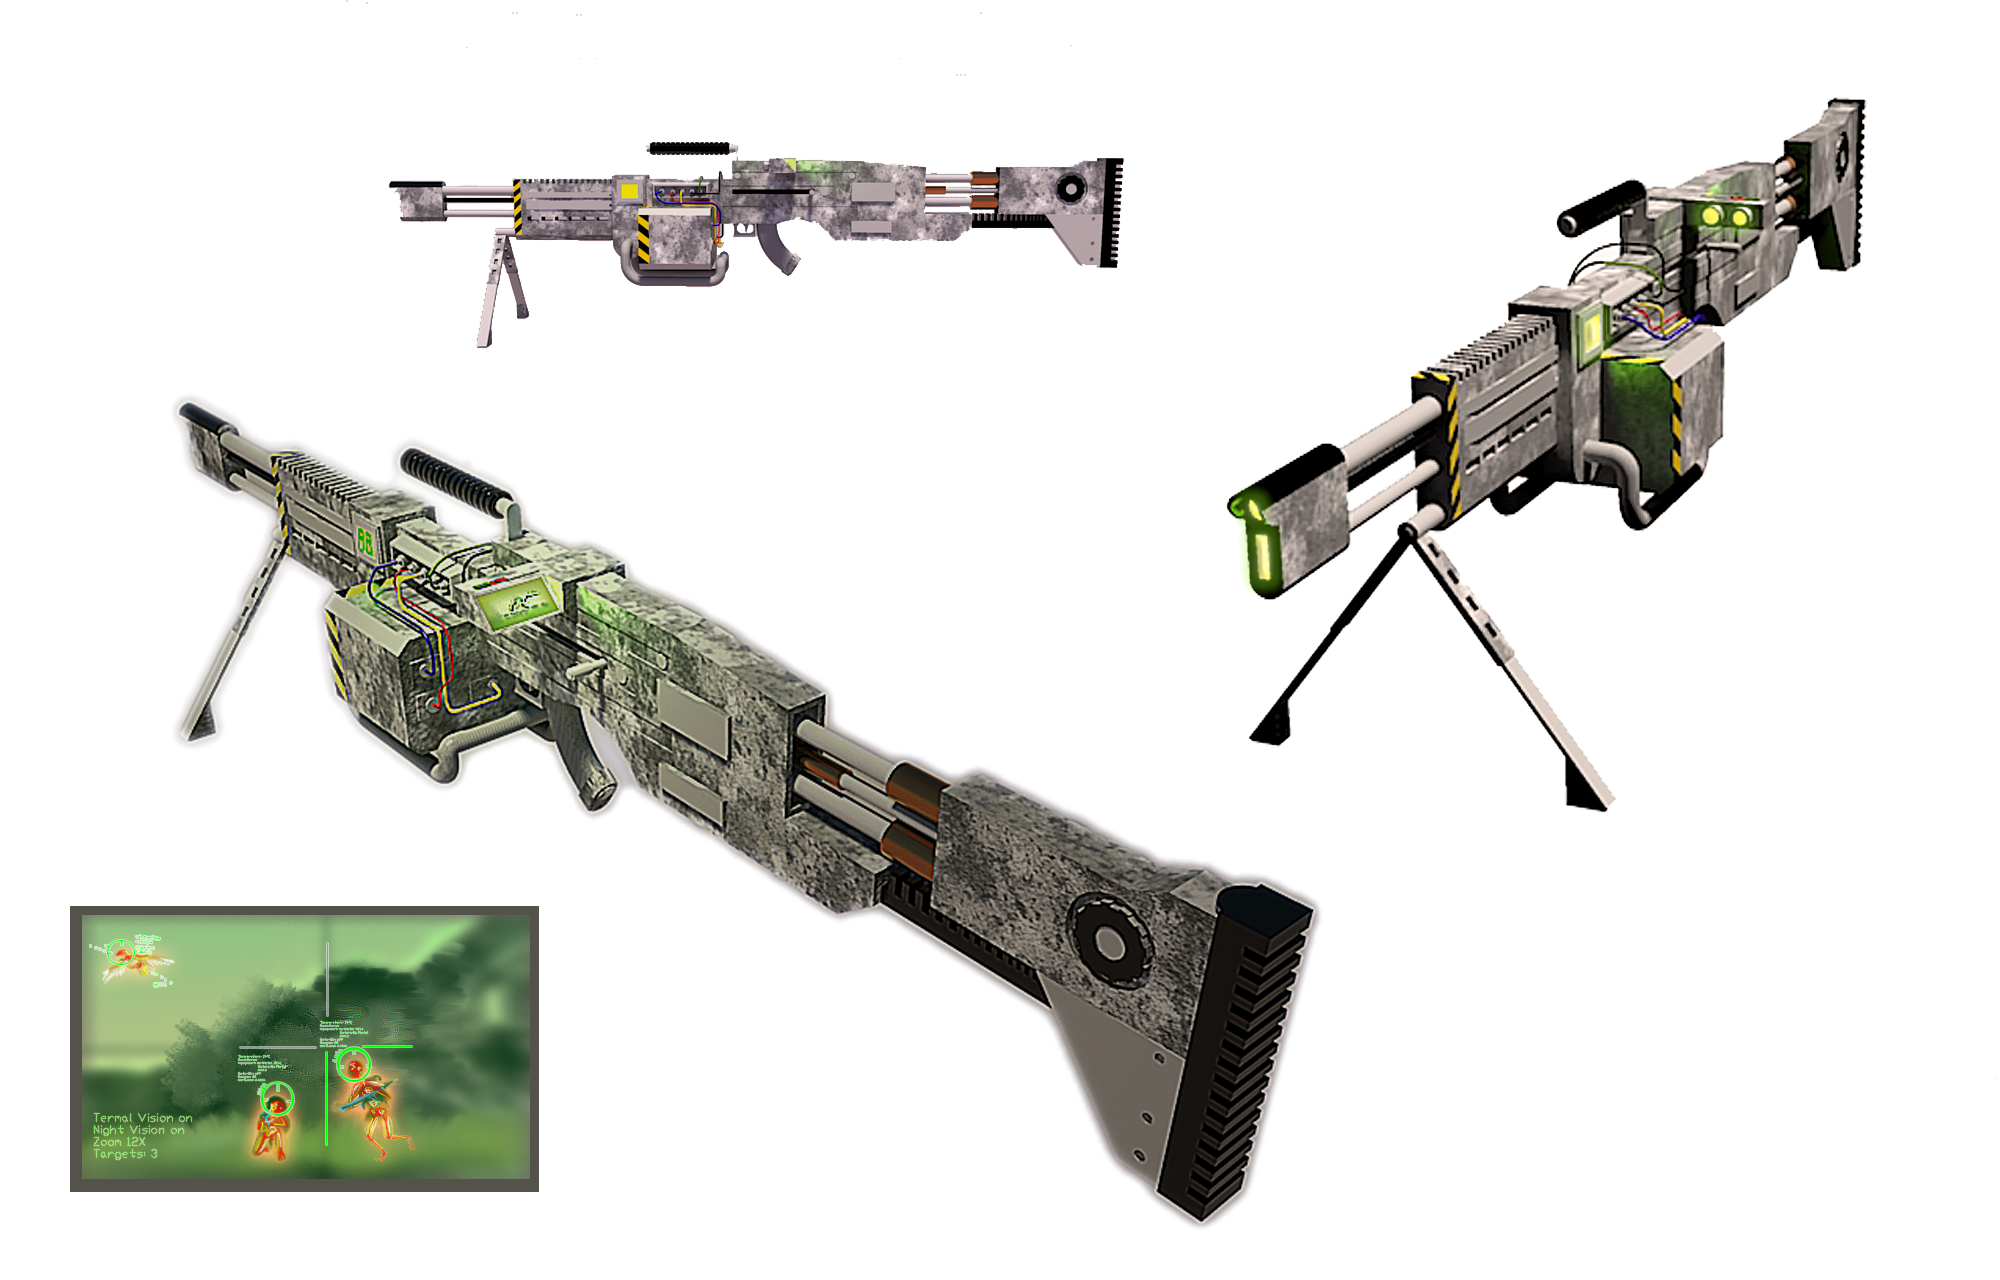 Laser LMG by orcbruto